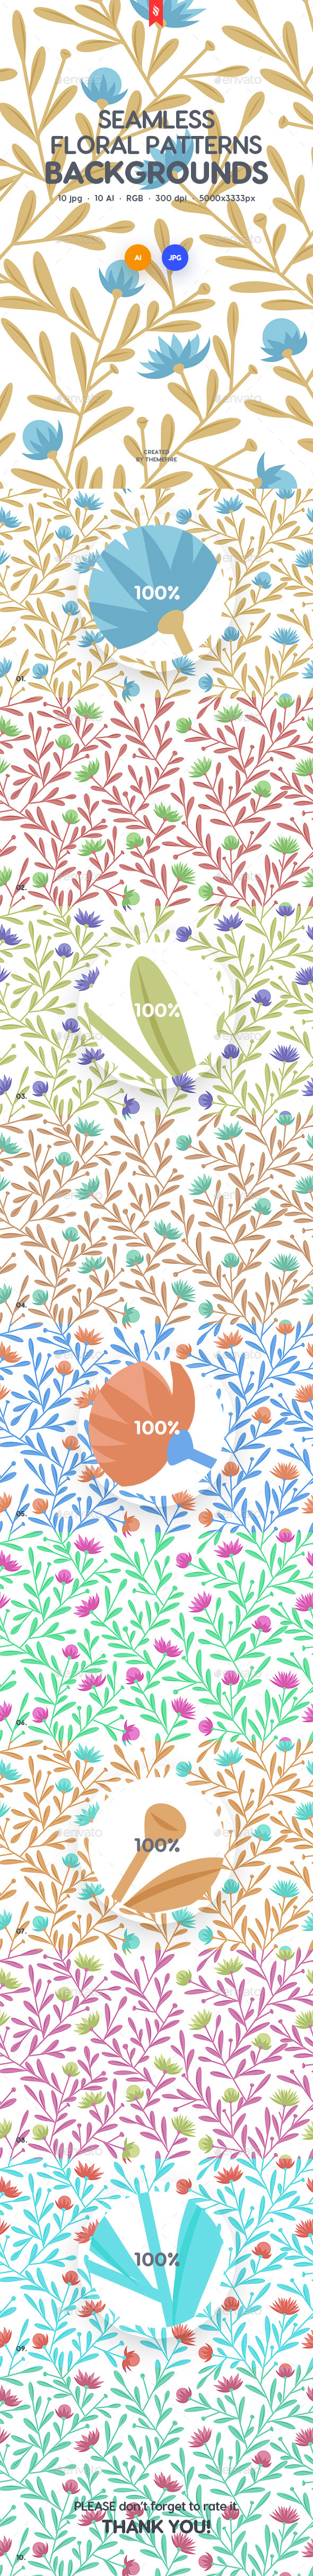 GraphicRiver Seamless Floral Patterns Backgrounds 21176512